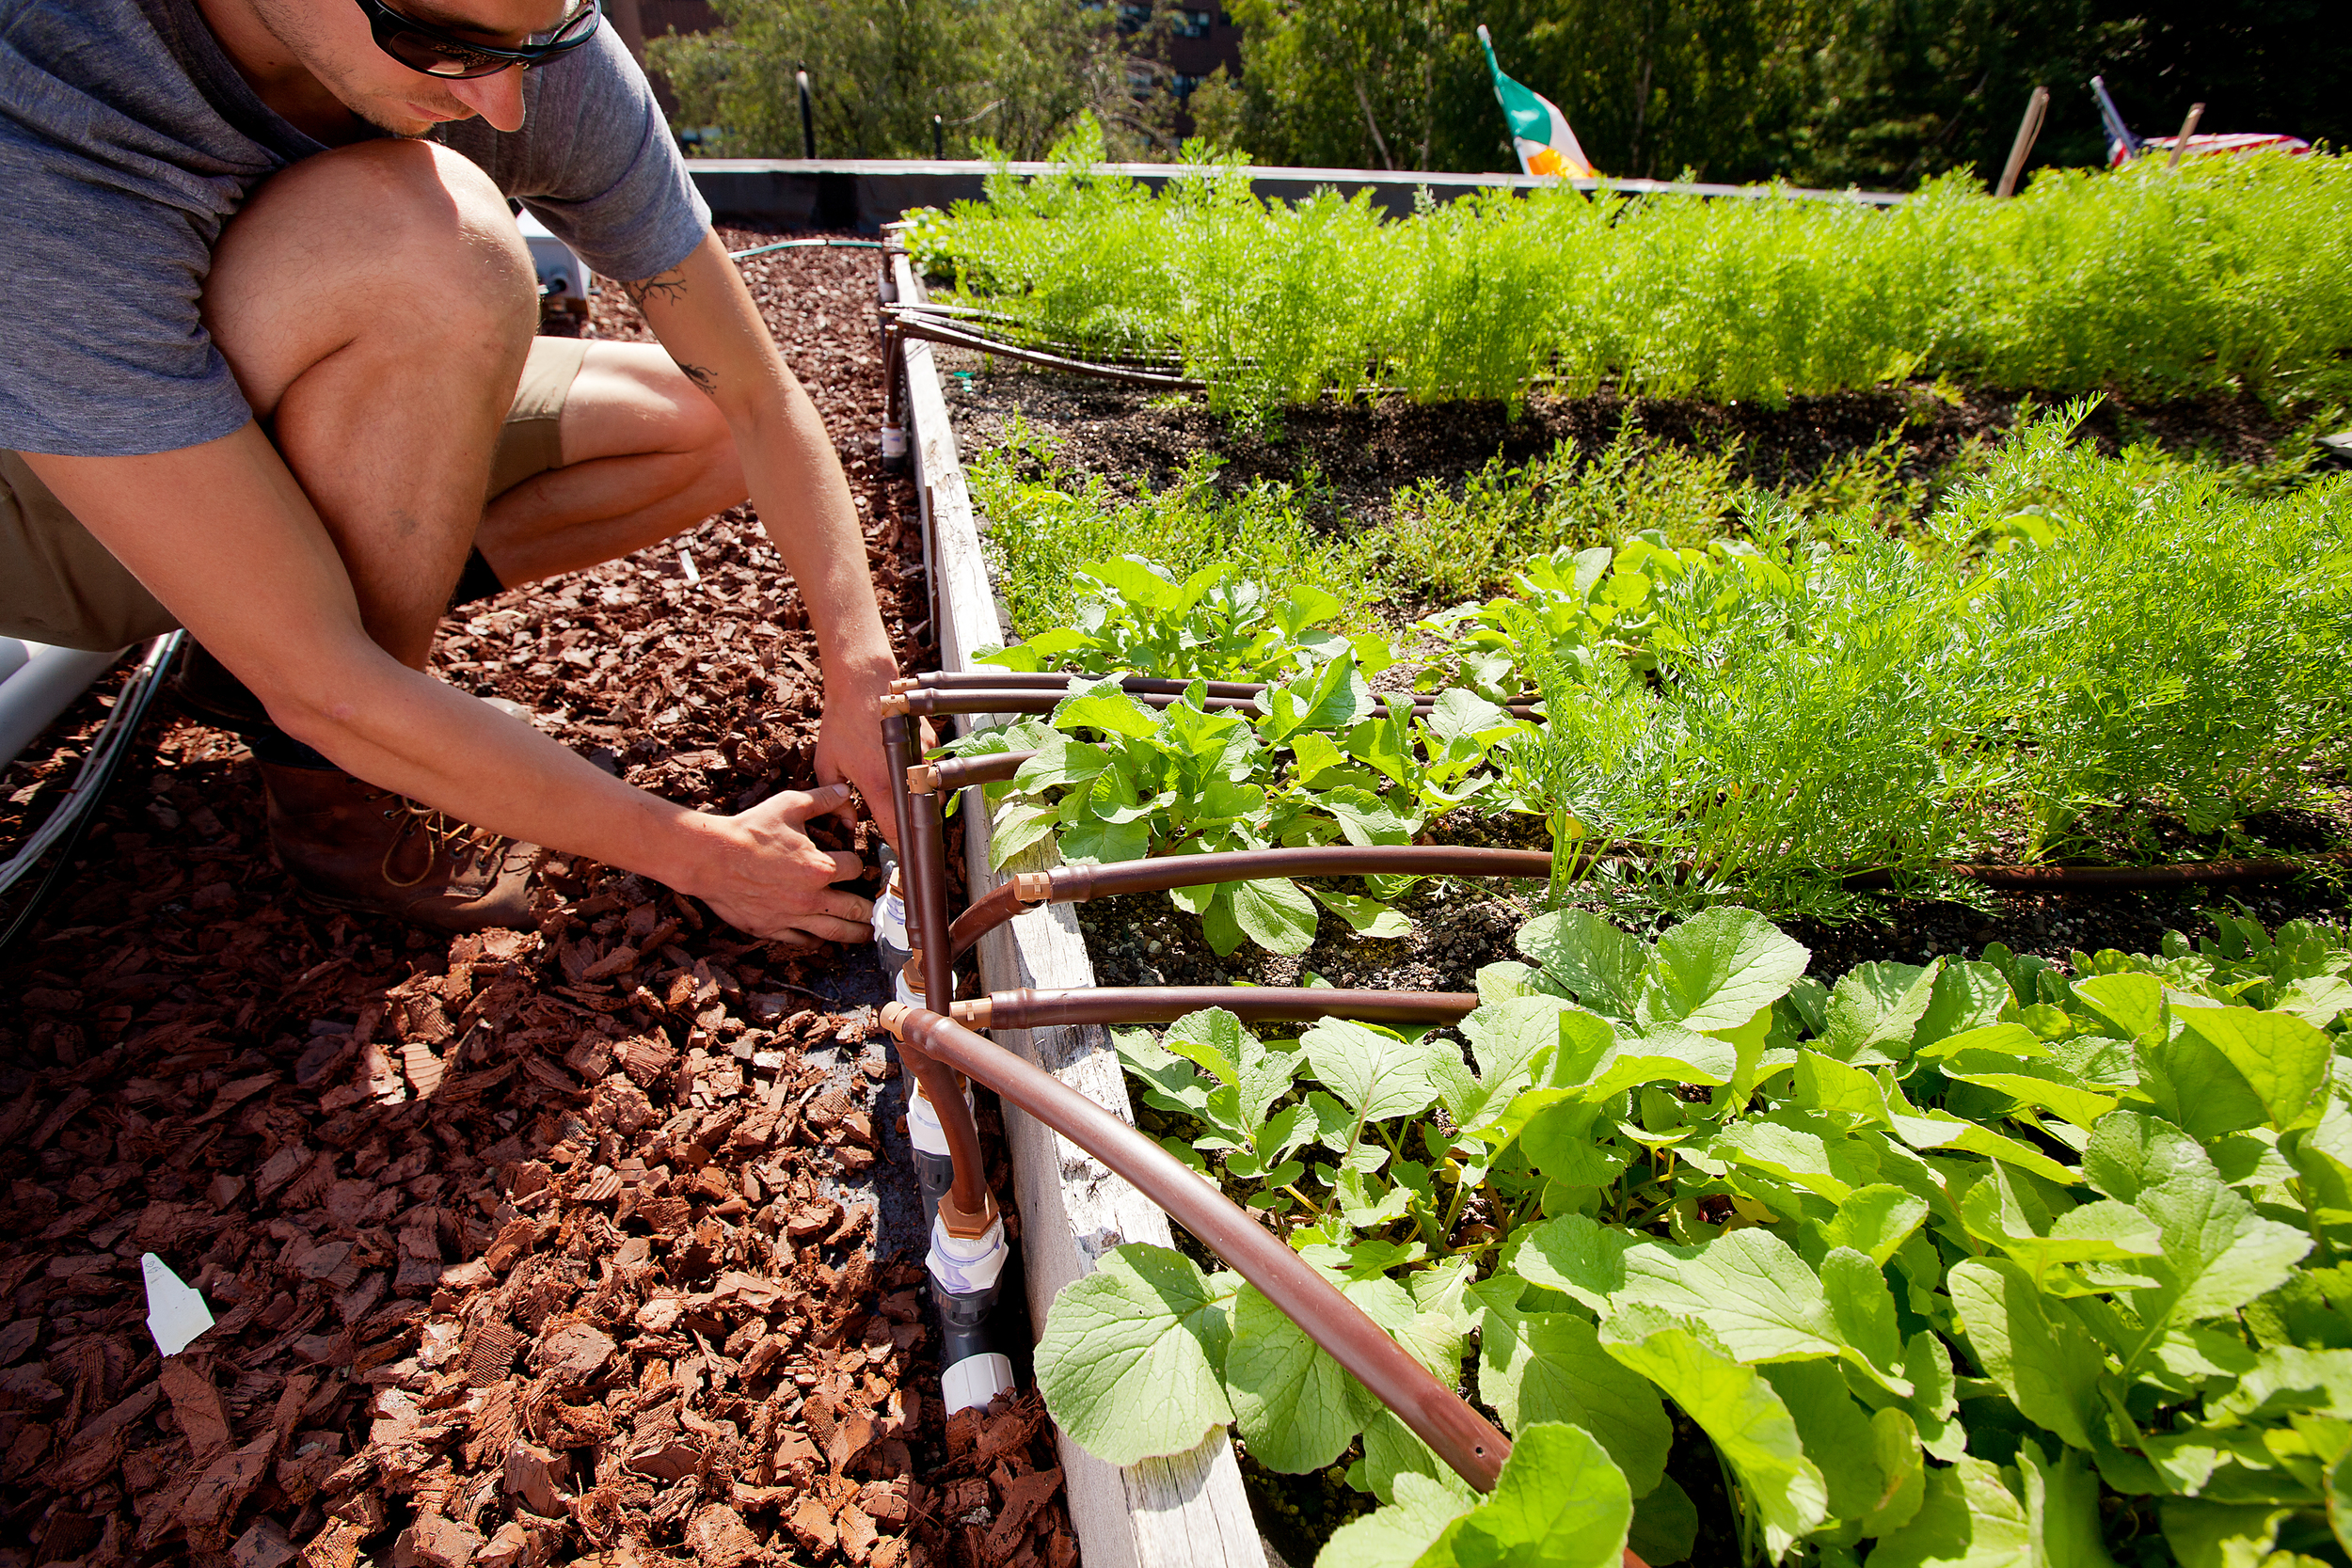 At Ester Restaurant Rooftop Farm, Netafim drip irrigation lines maximize watering efficiency, and recycled rubber mulch in vegetation-free zones slows rainwater runoff .